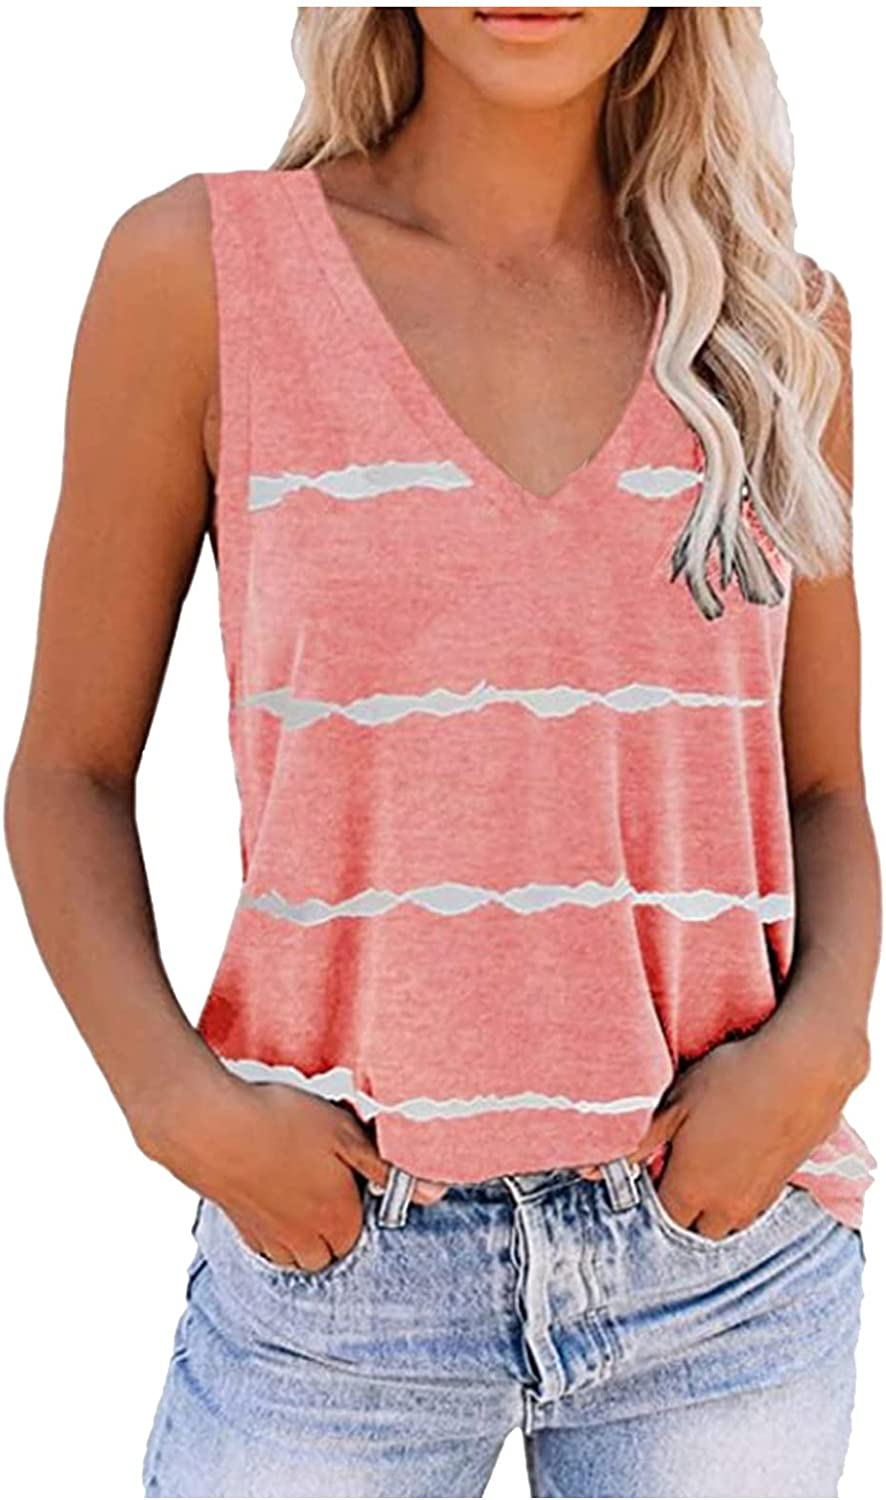 Fankle Womens Tank Tops Sleeveless Tie Dye Scoop Neck Loose Fit Summer Women Top Cami Shirts